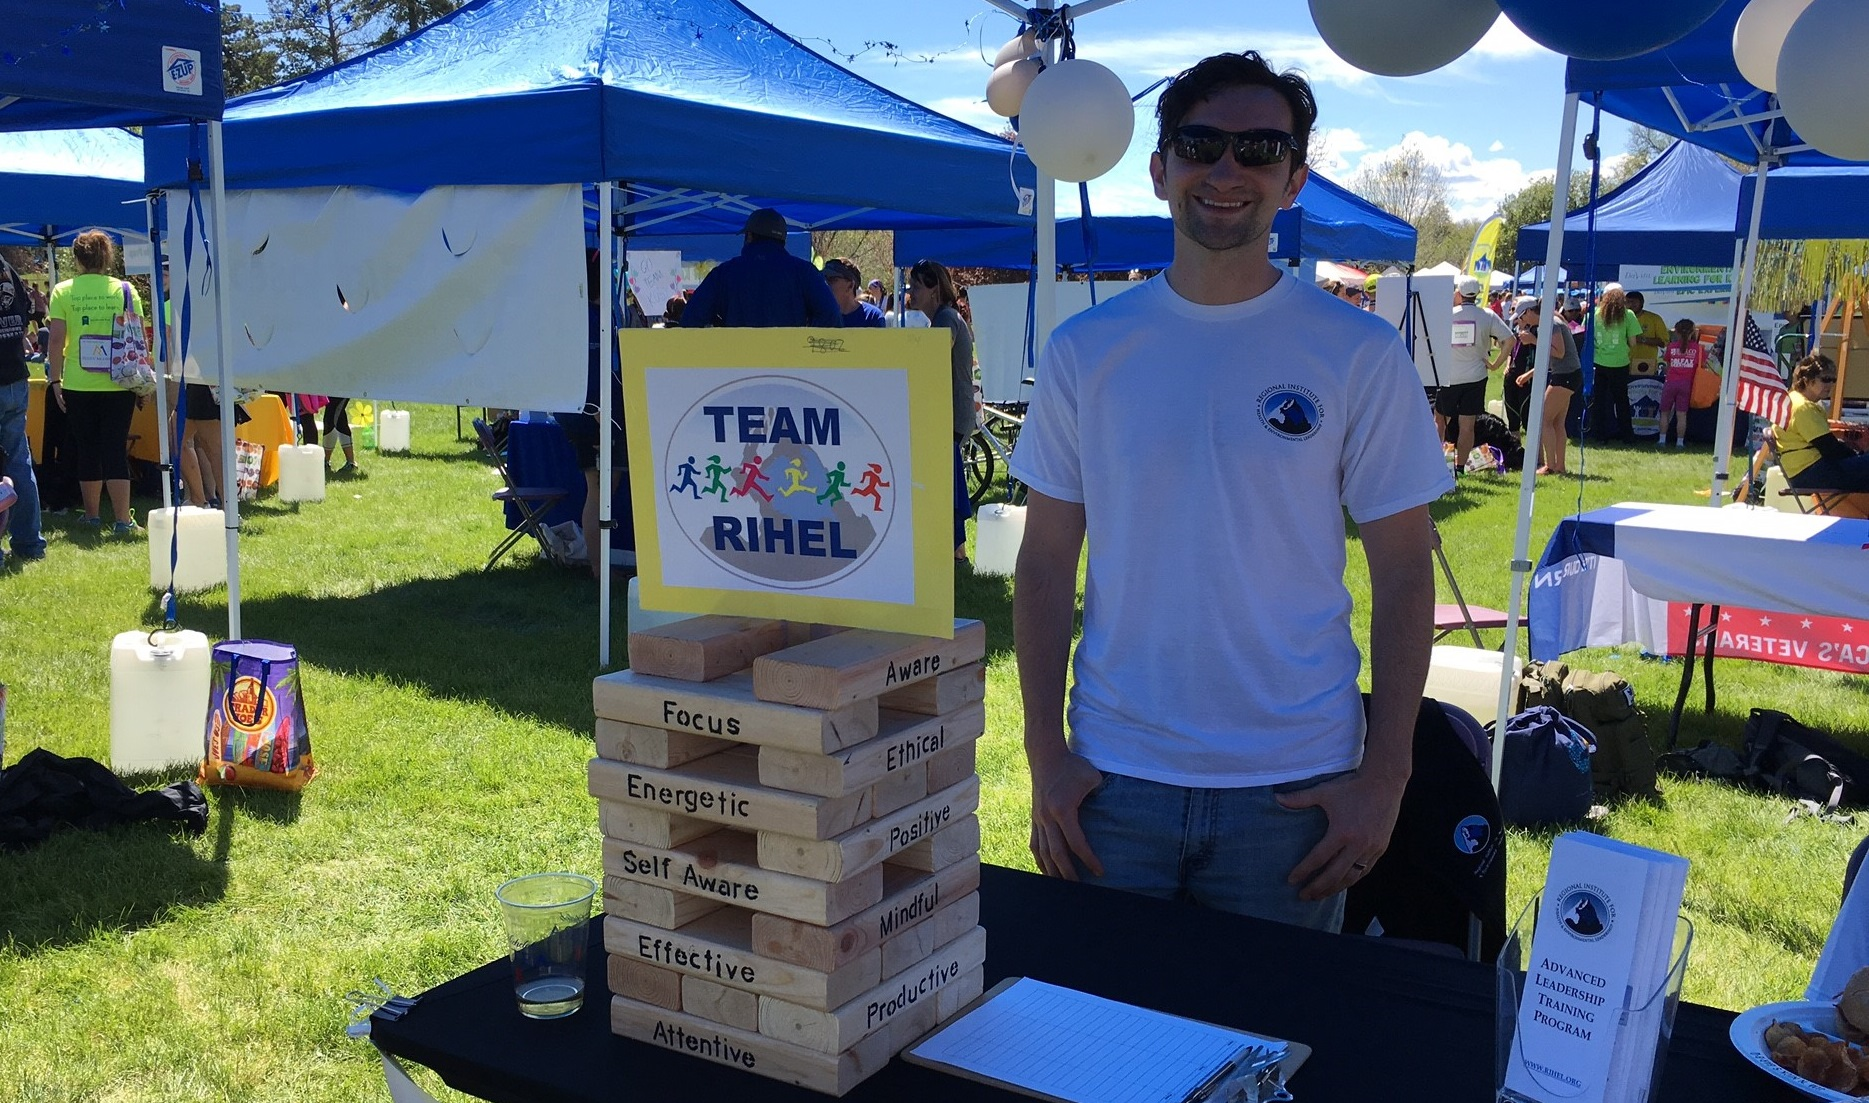 Volunteer for Team RIHEL